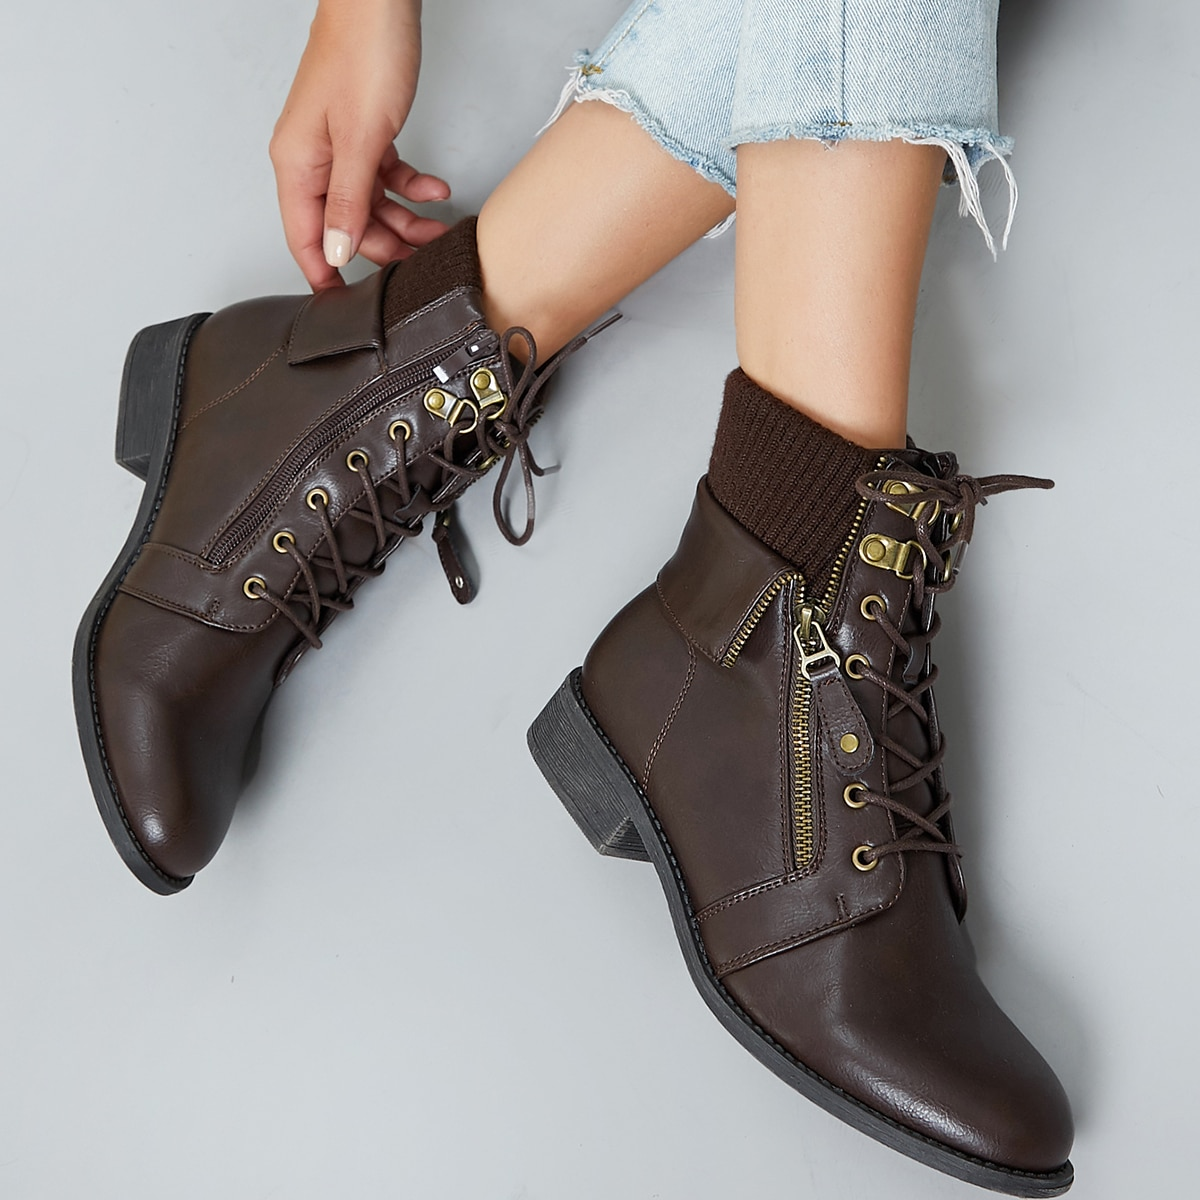 Rib Knit Collar Lace Up Flat Hiking Boots